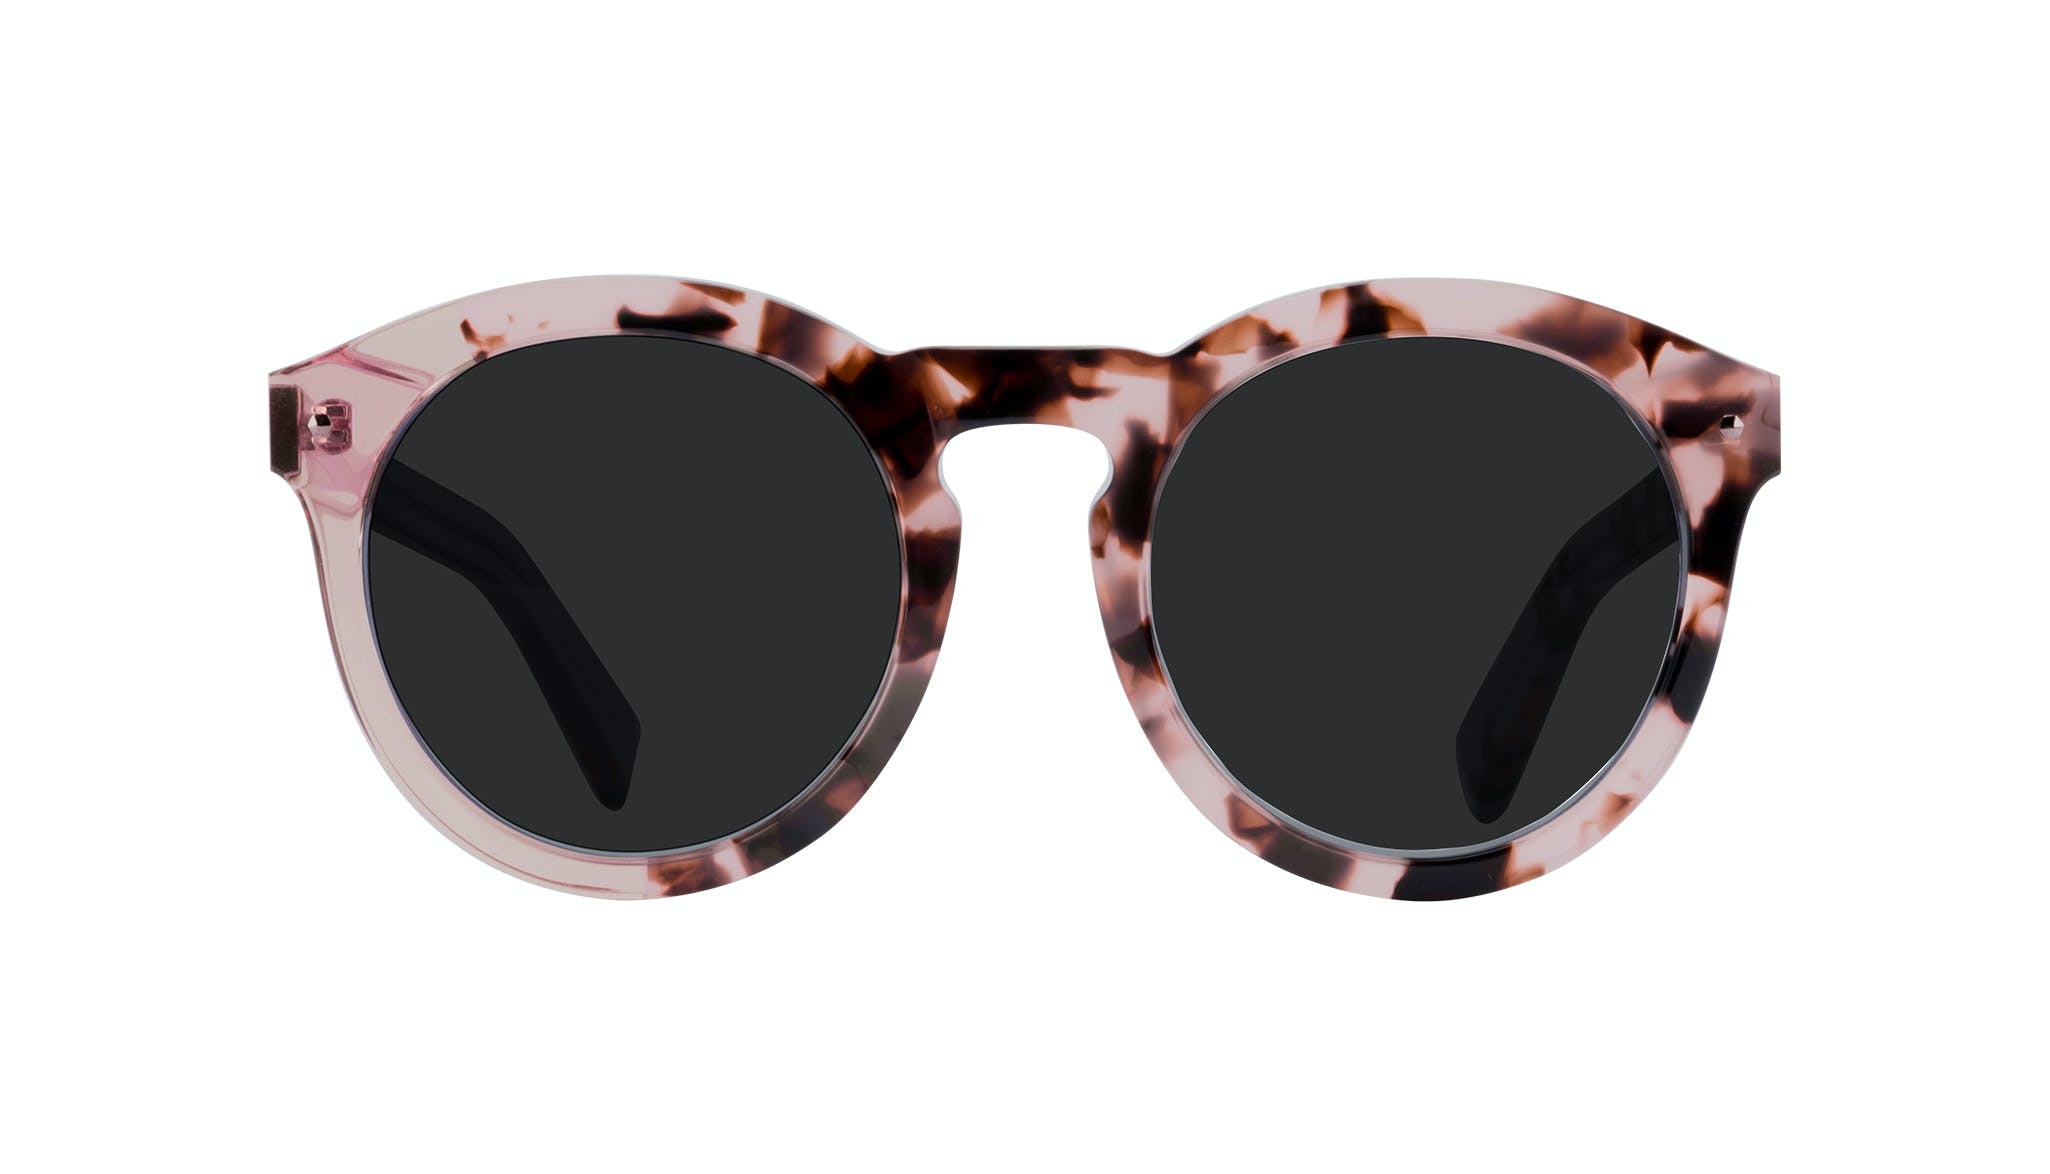 Affordable Fashion Glasses Round Sunglasses Women Mood Blush Tortoise